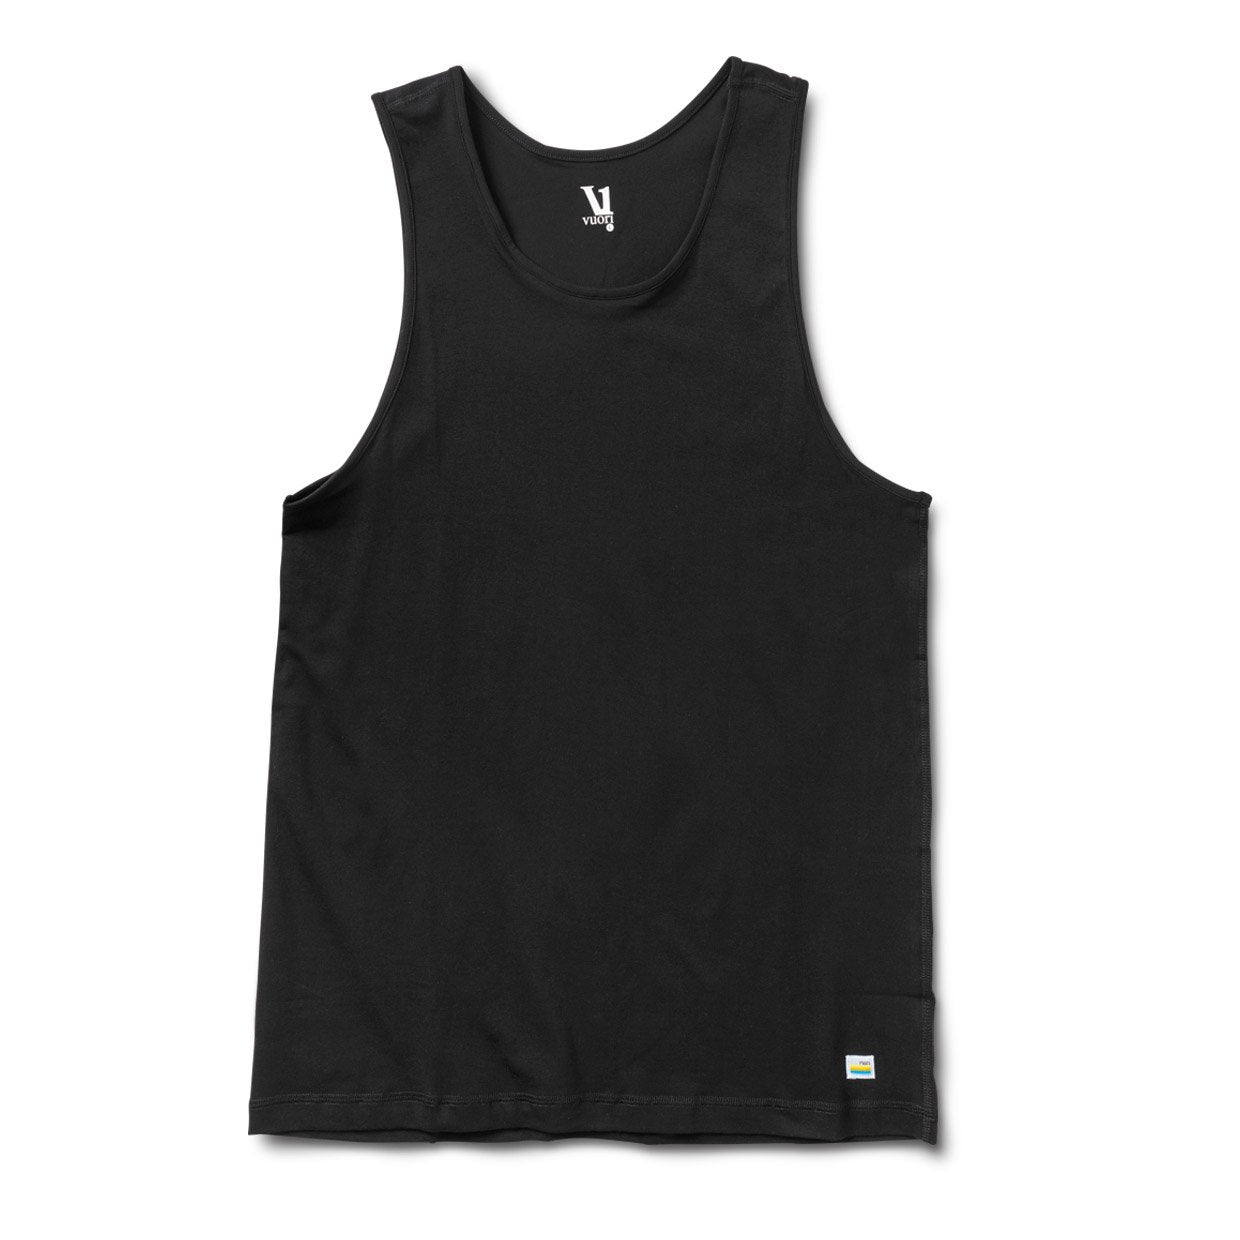 Tuvalu Stretch Tank - Black - Black 1